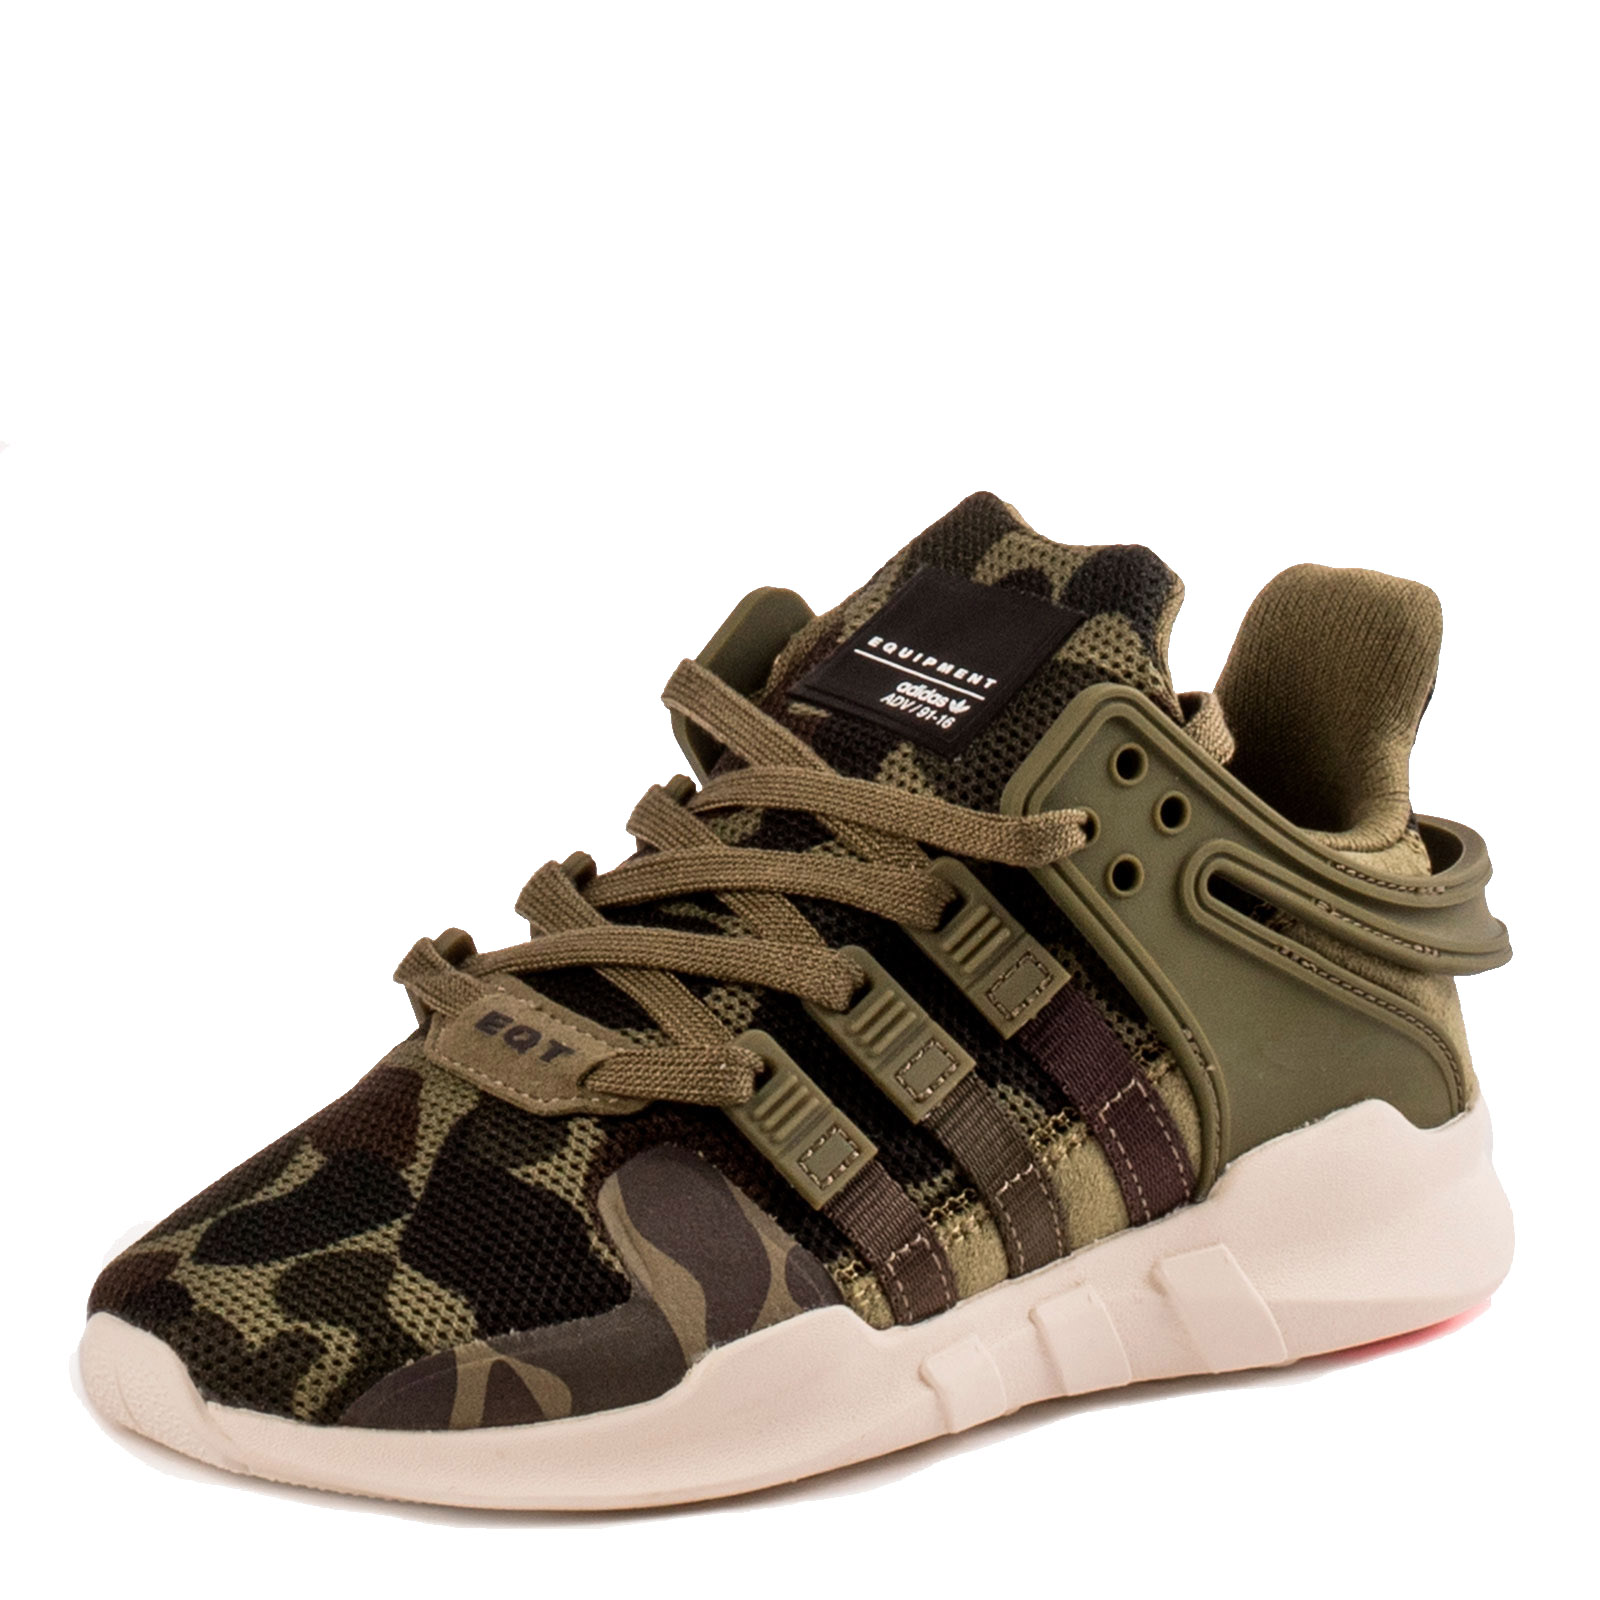 Sneakers Adidas BB0249 sports and entertainment for boys oudiniao sports and leisure shoes